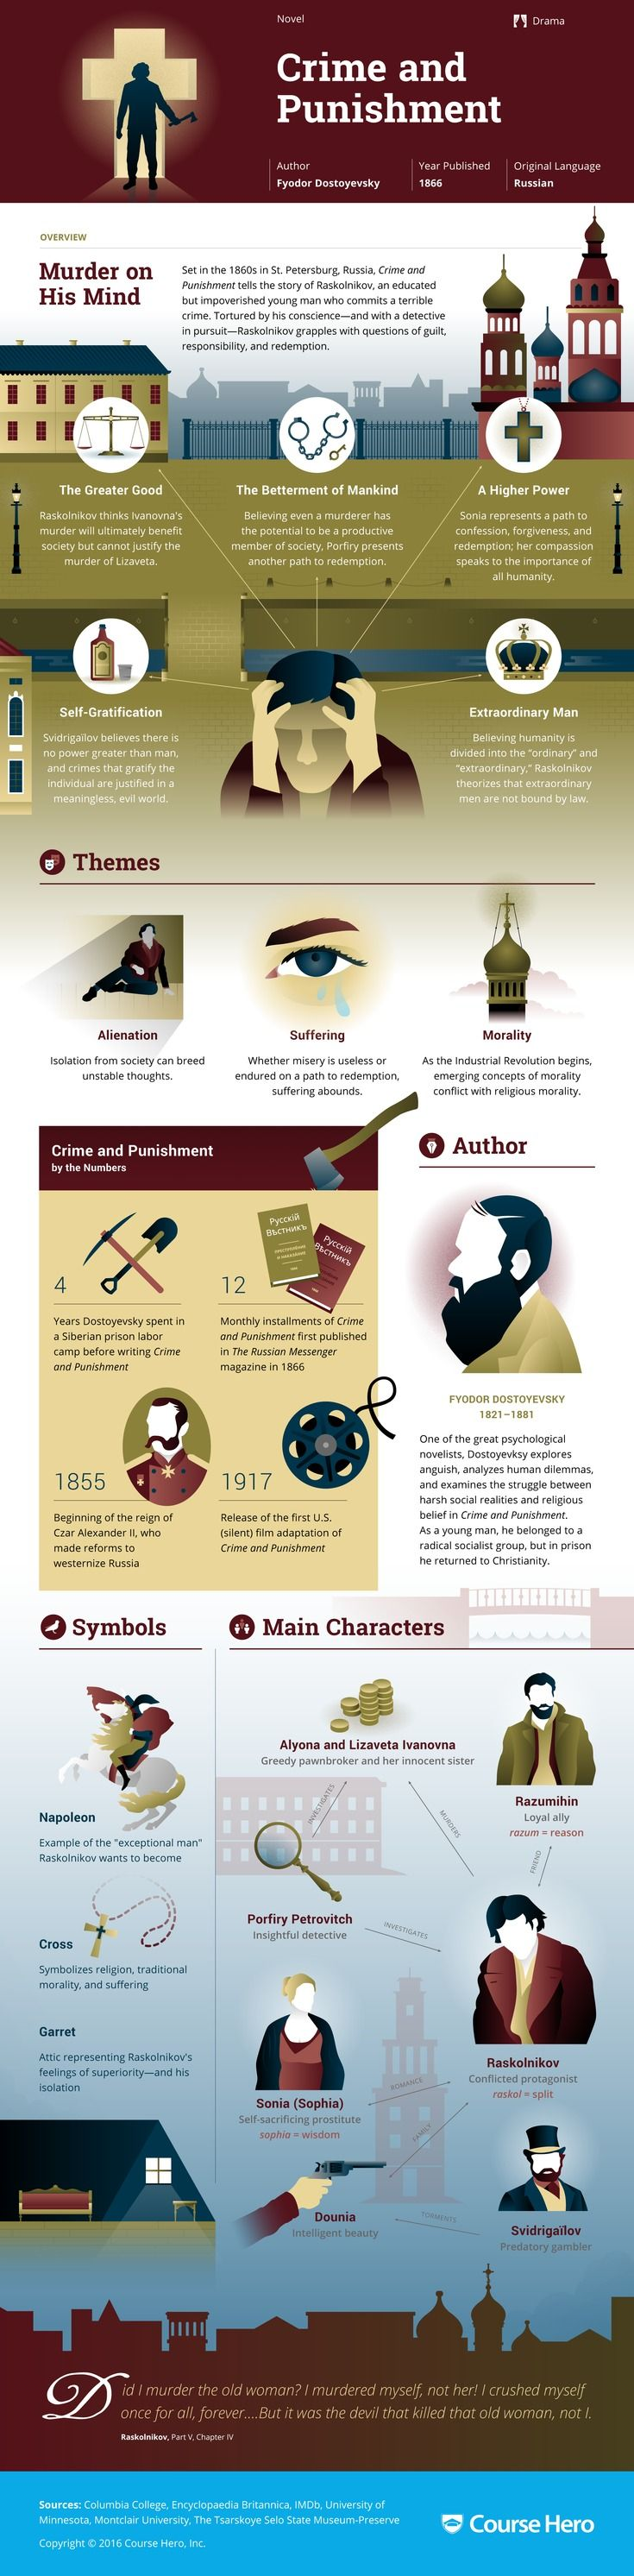 This 'Crime and Punishment' infographic from Course Hero is as awesome as it is helpful. Check it out!